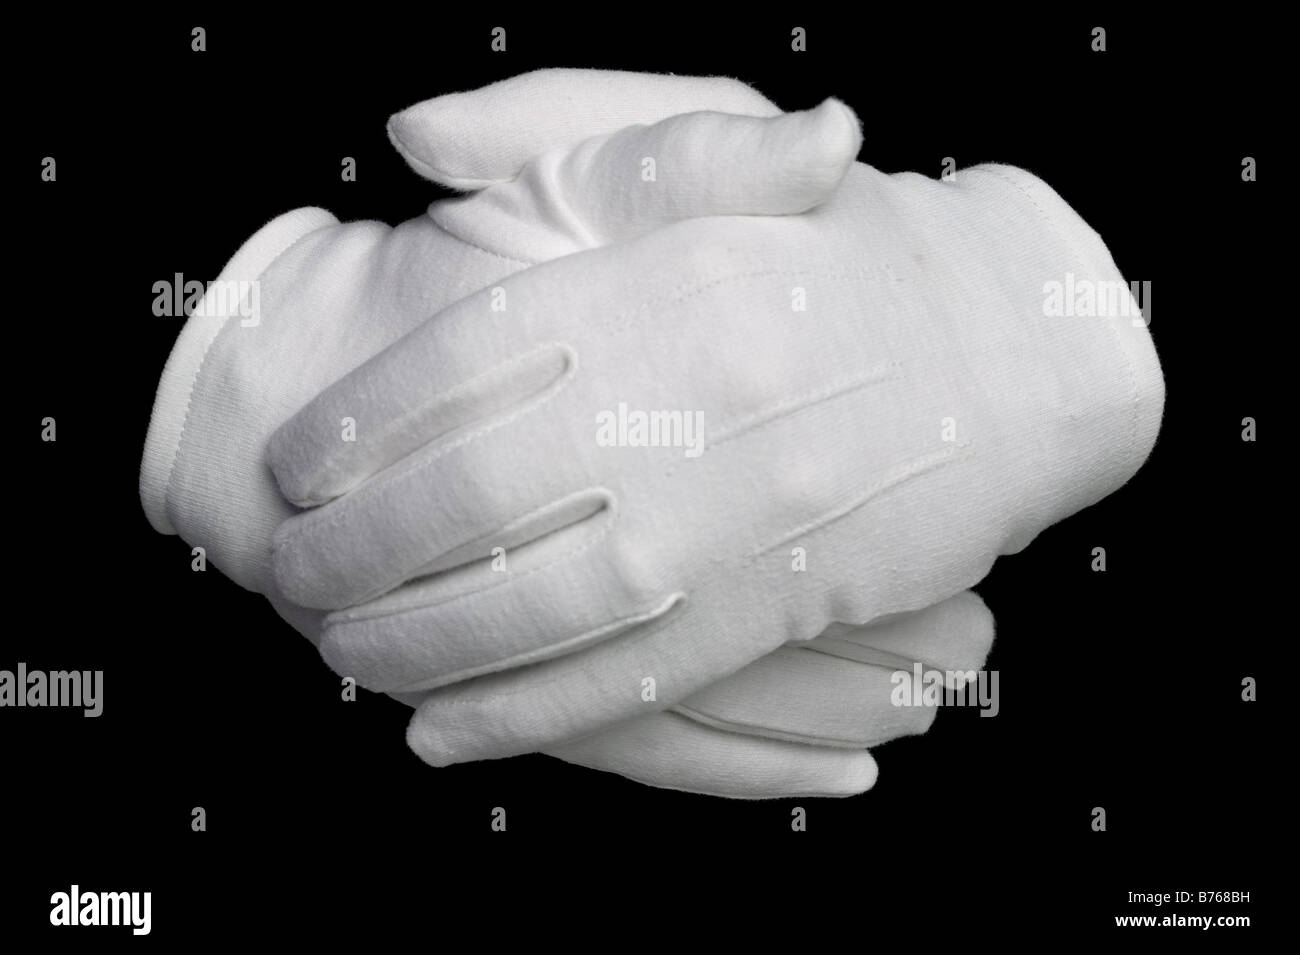 Hands held in white cotton gloves isolated on a black background - Stock Image